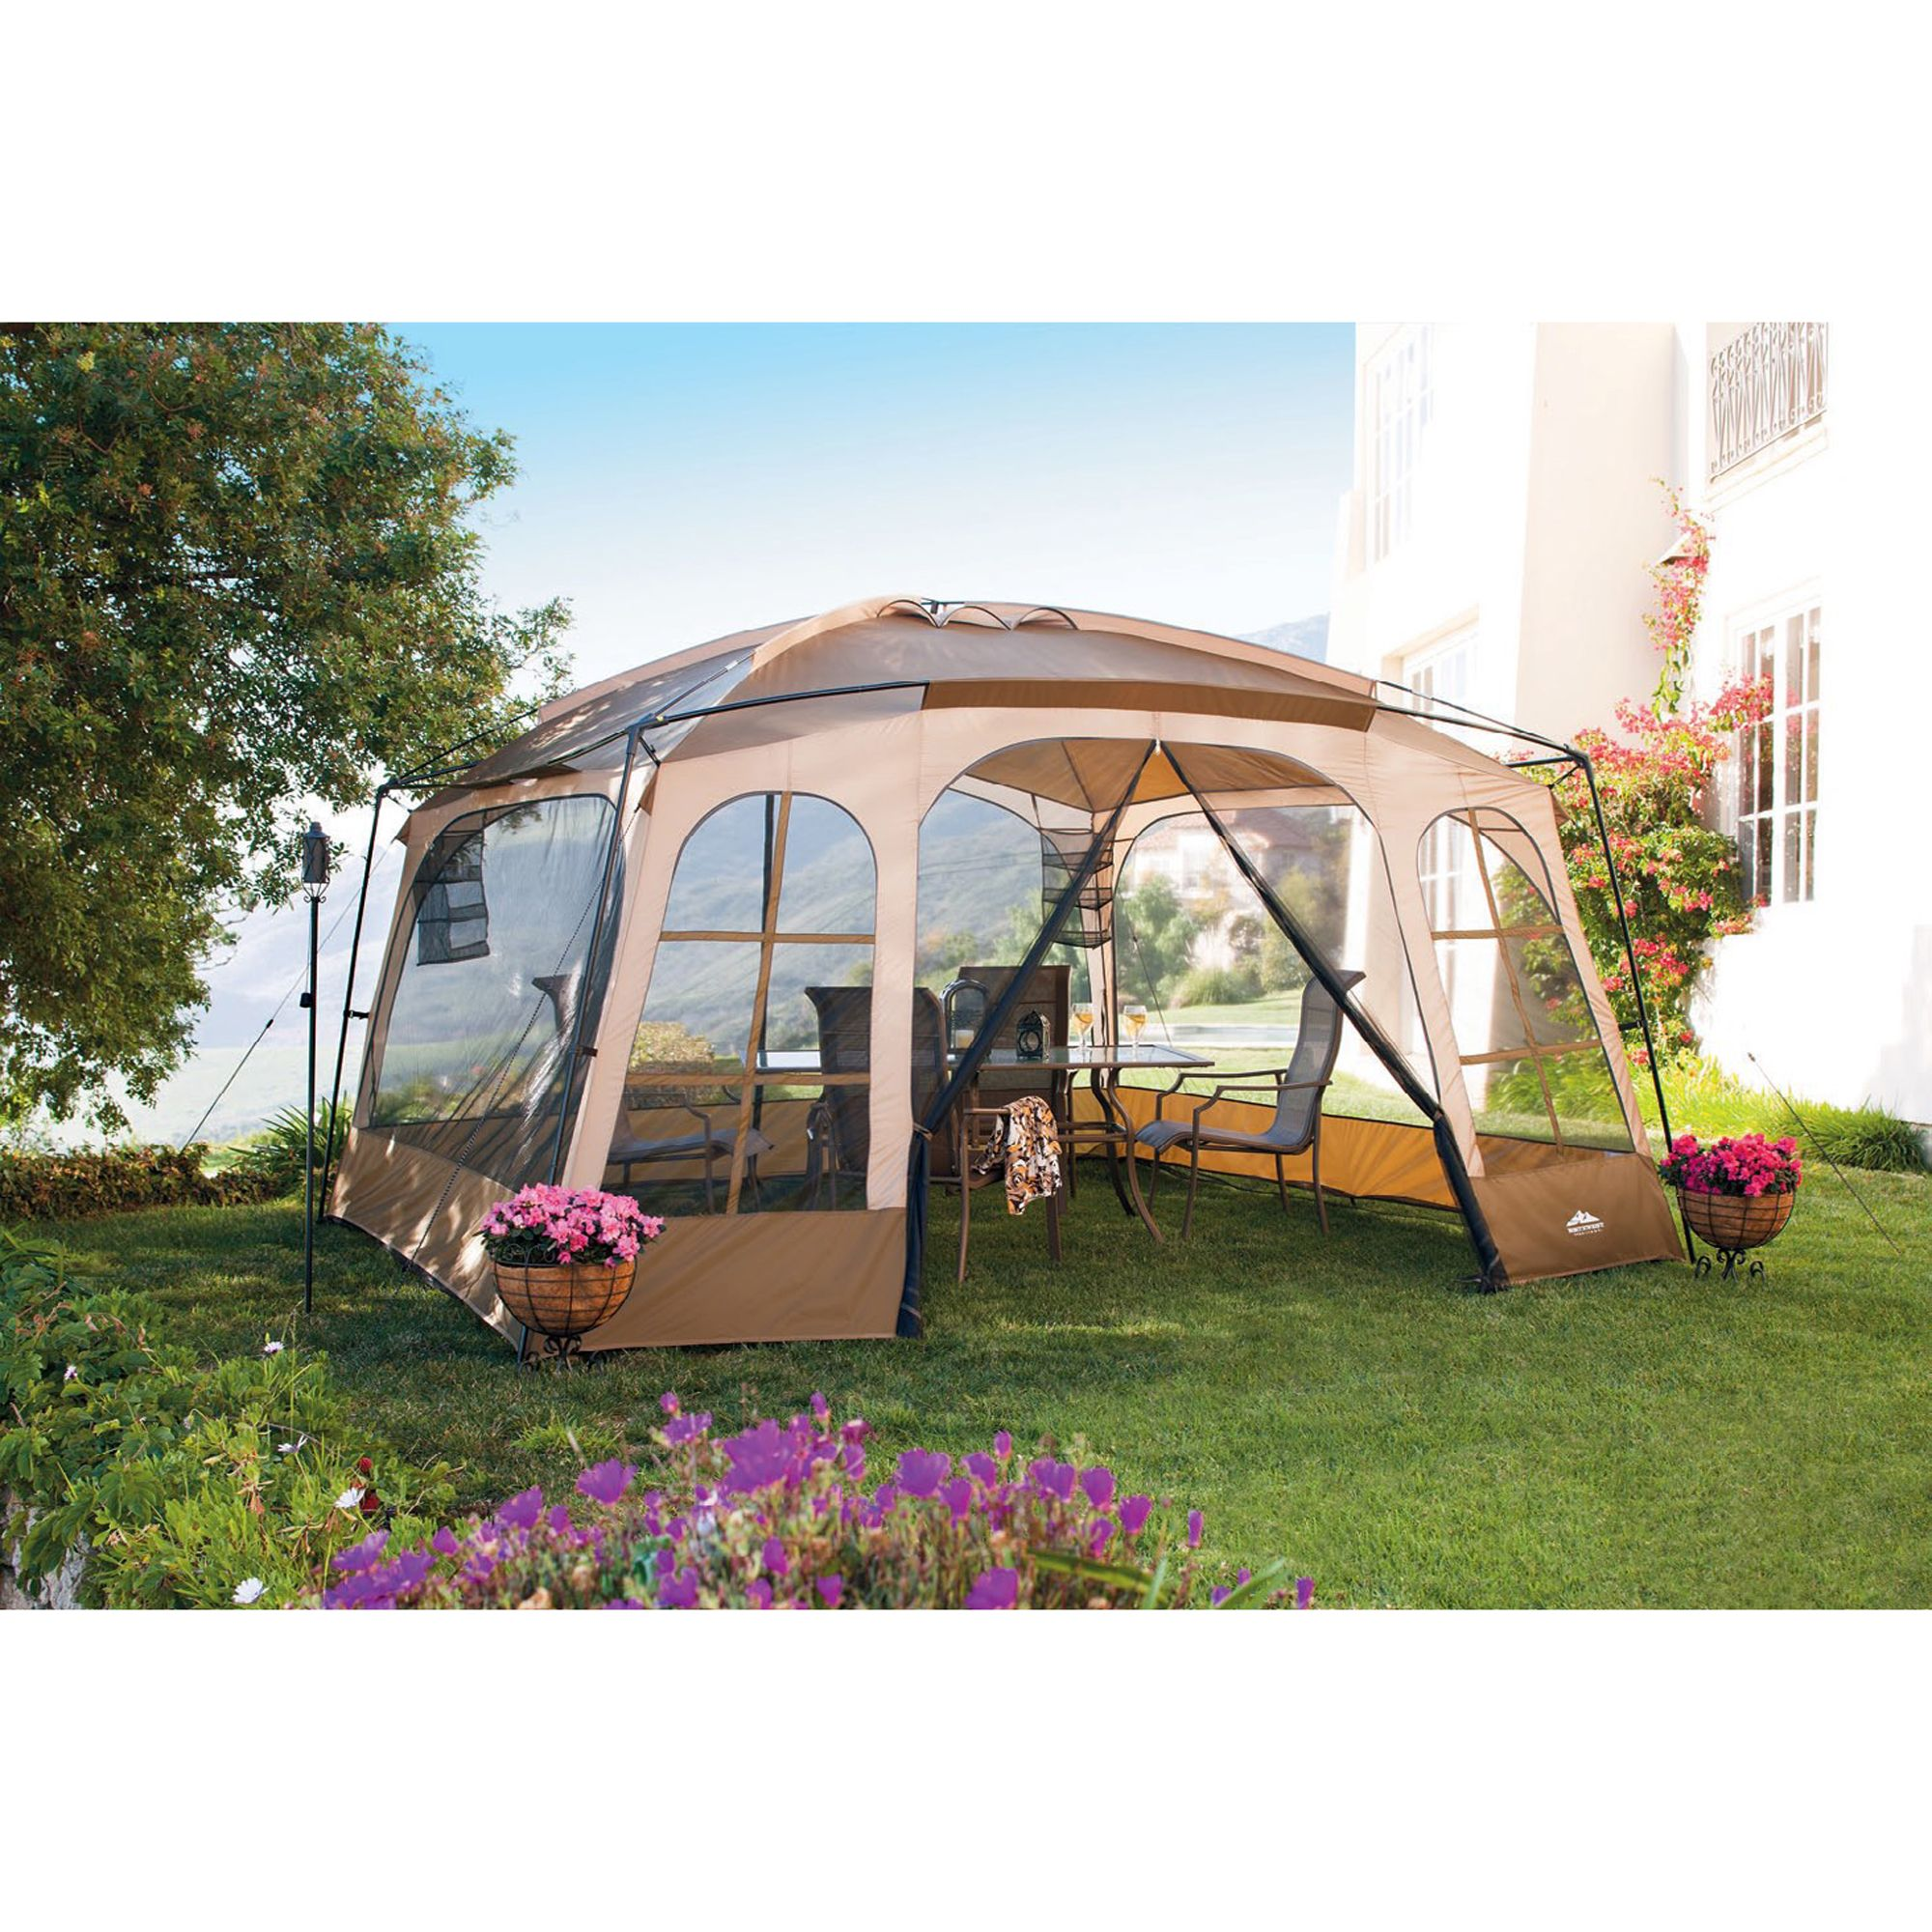 12 ft. Deluxe Screened Gazebo                                                                                                    at mygofer.com